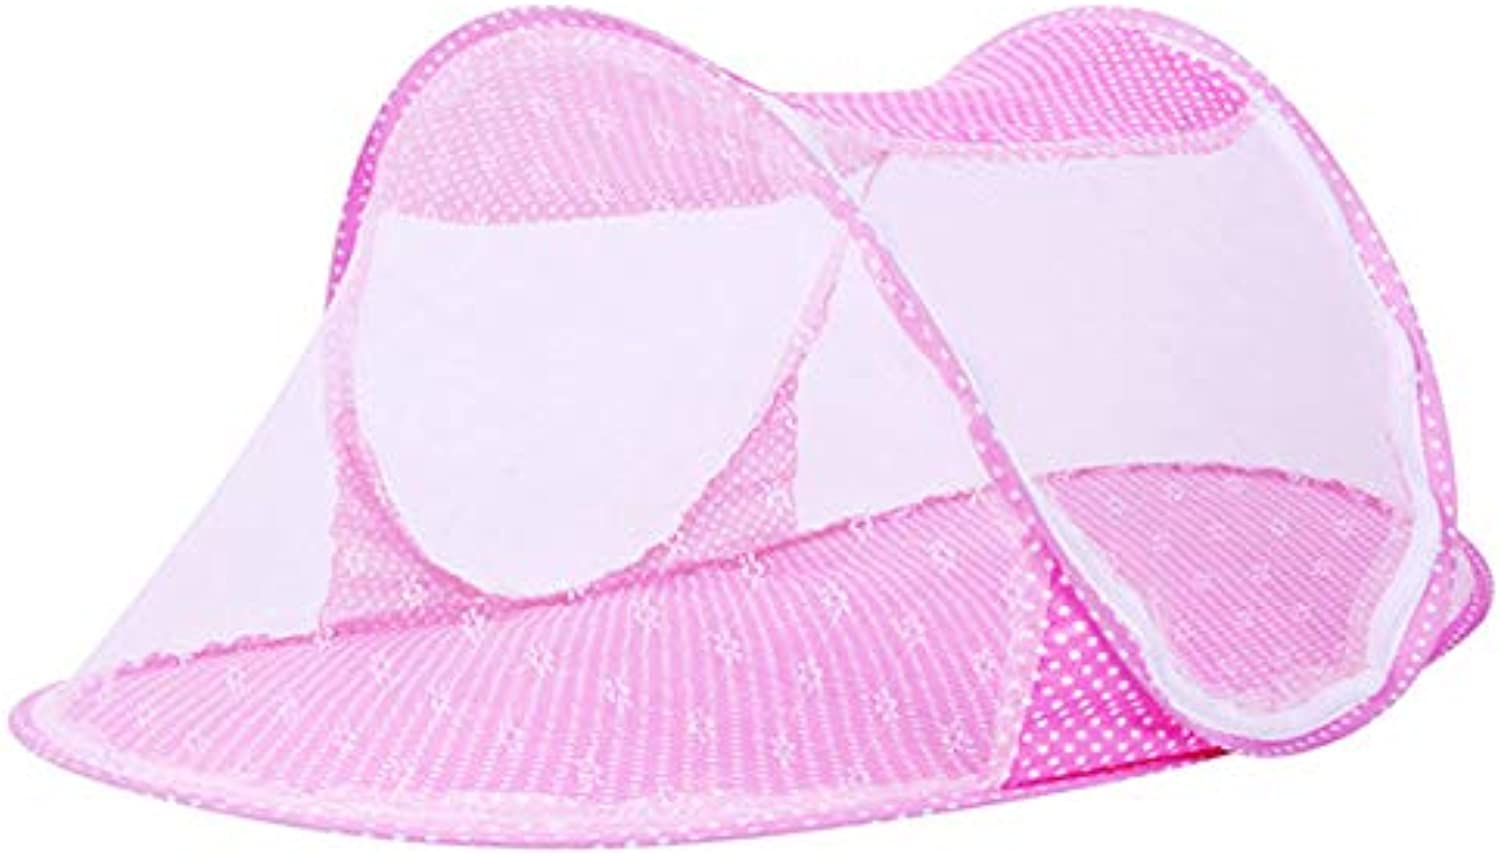 Portable Baby Crib Mosquito Net Tent MultiFunction Cradle Bed Infant Foldable Netting for Girls YYT333   Pink